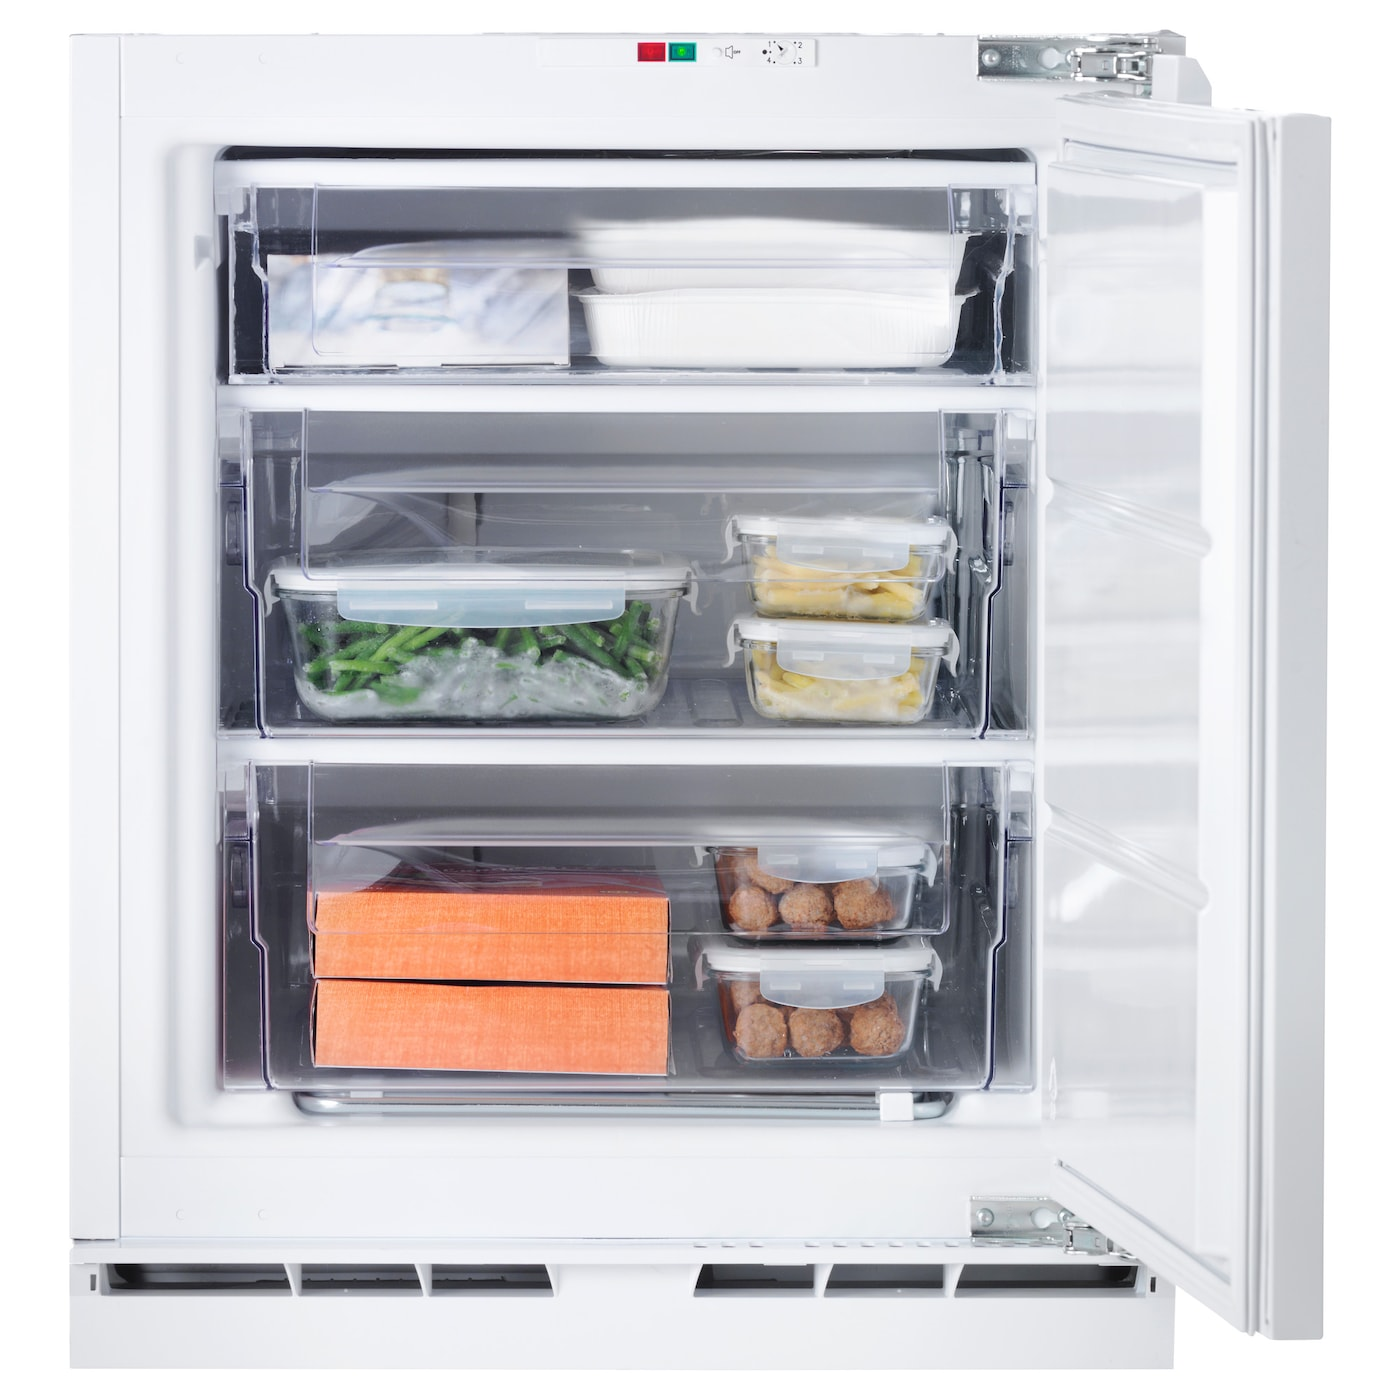 Uncategorized Ikea Kitchen Appliances kitchen appliances ikea genomfrysa integrated freezer a smooth inner walls and 3 removable drawers for easy cleaning